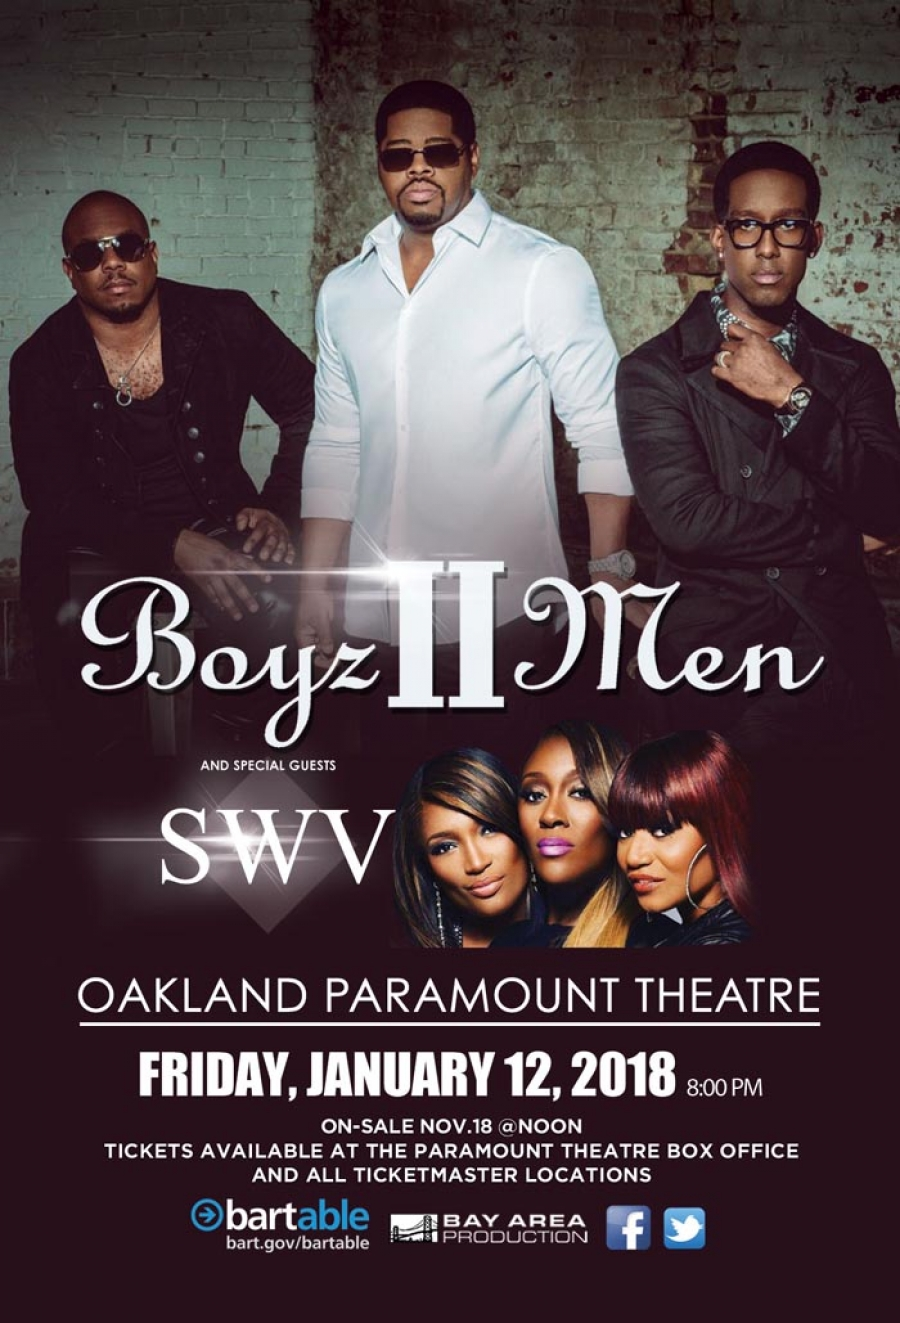 Boyz II Men with special guests SWV